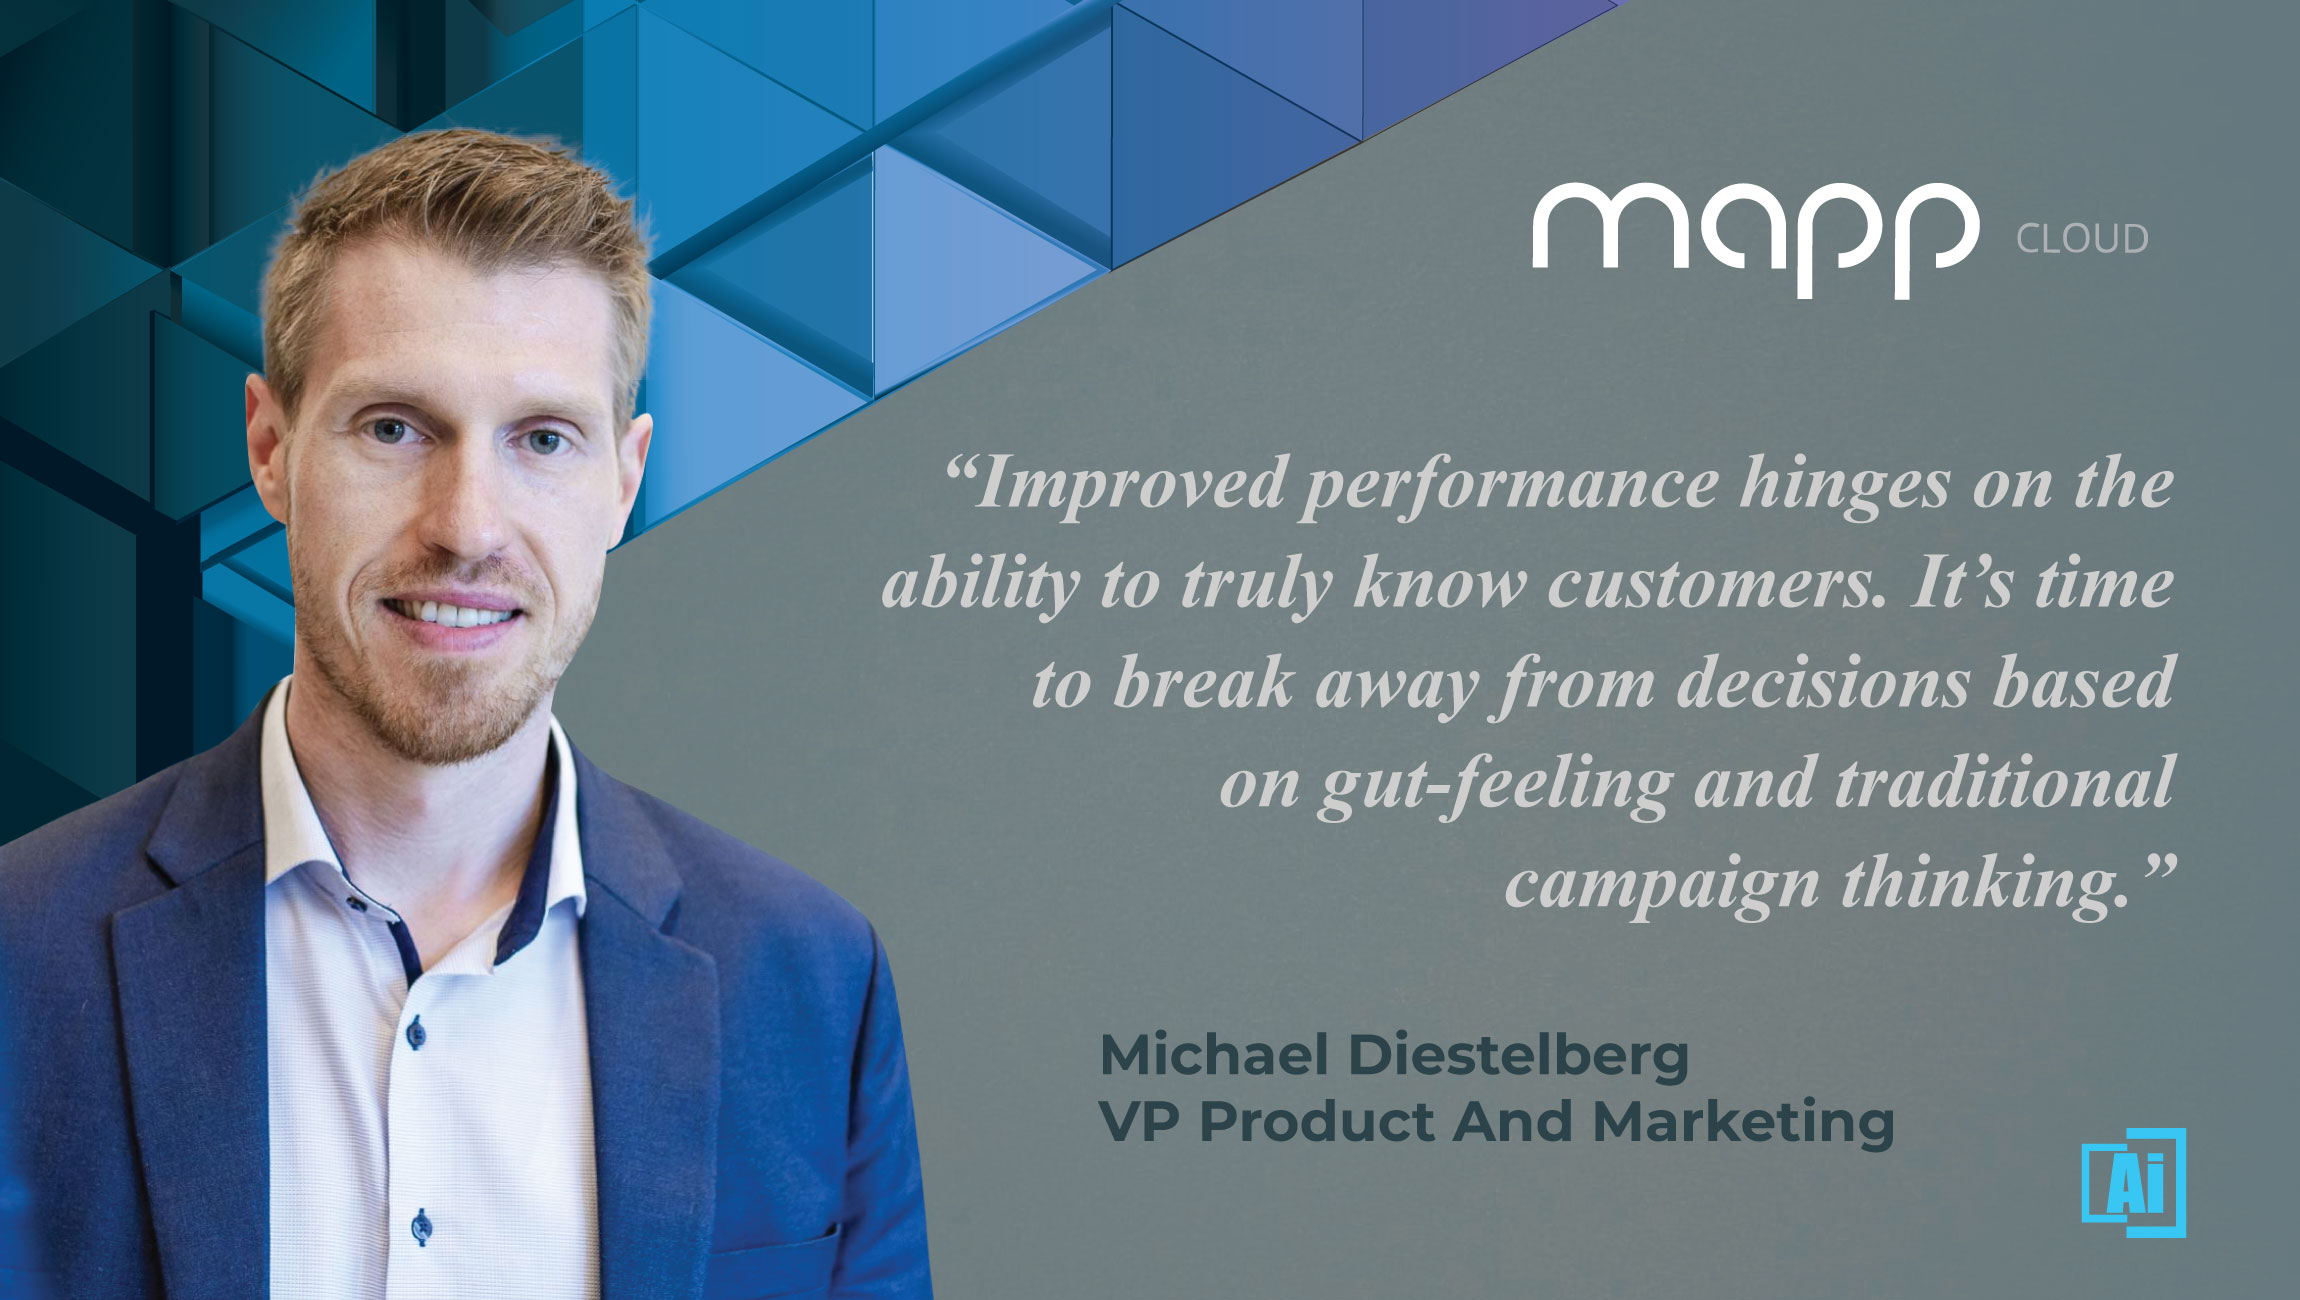 AiThority Interview with Michael Diestelberg, VP Product & Marketing at Mapp